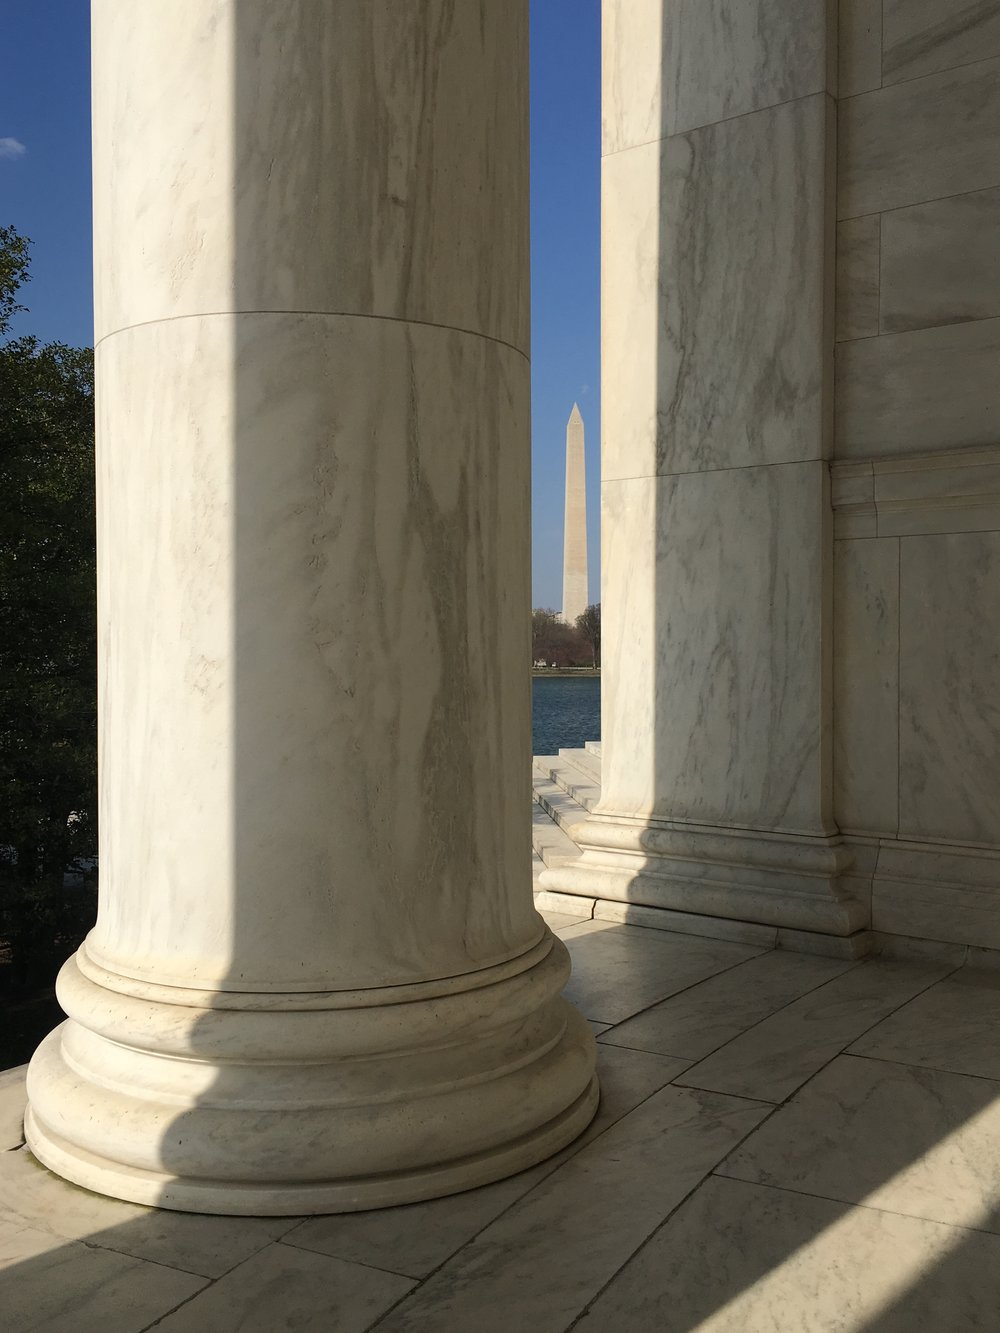 View of the Washington Monument from the Jefferson Memorial.